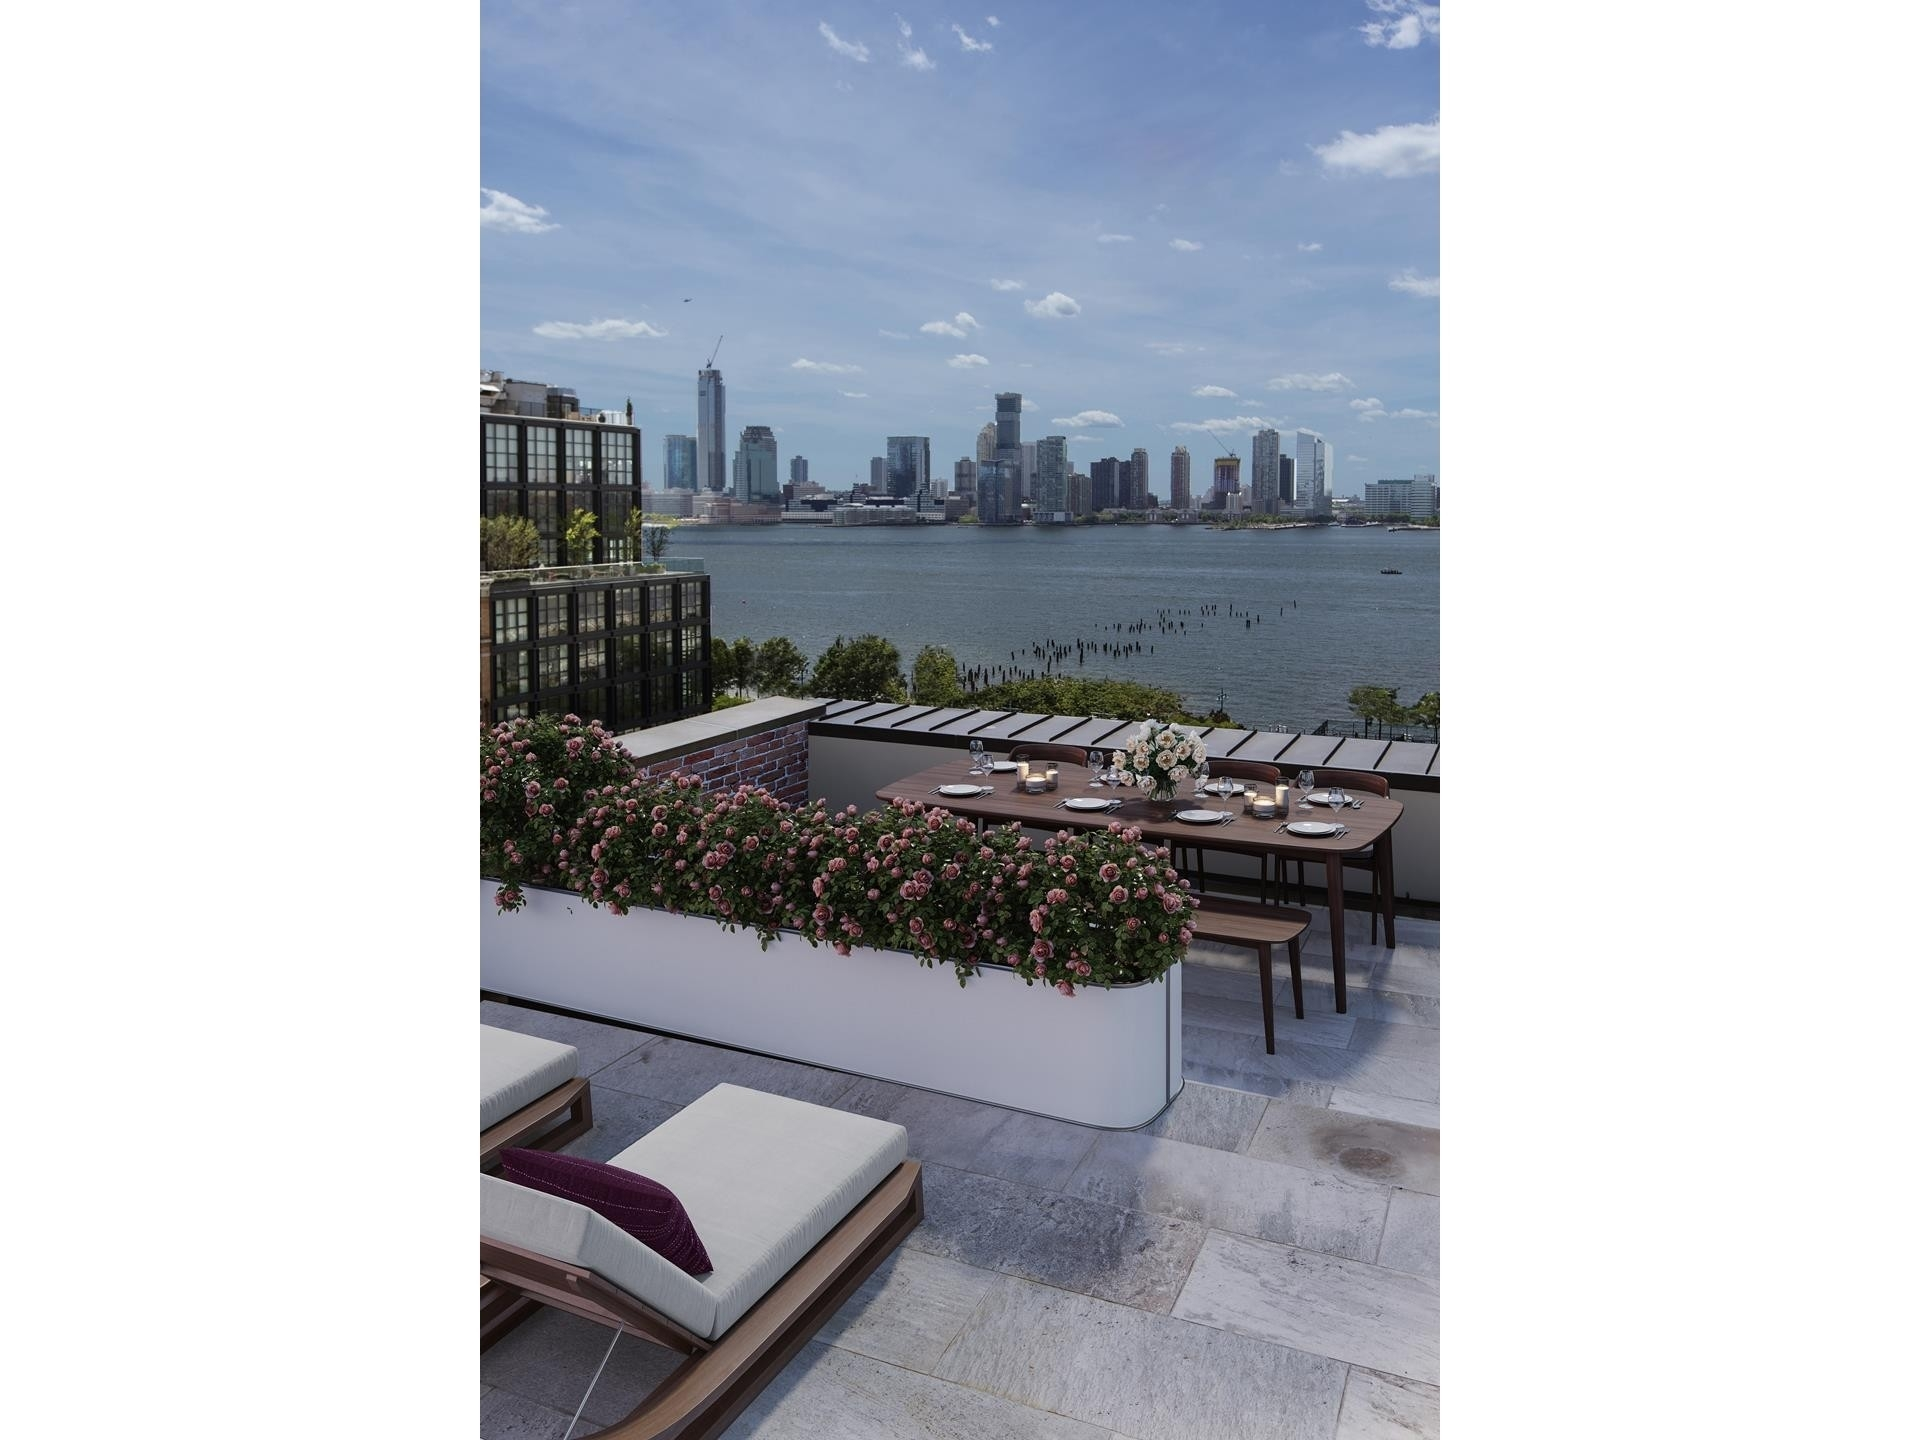 13. Condominiums for Sale at Spice Warehouse, 481 WASHINGTON ST , PHBC Hudson Square, New York, NY 10013